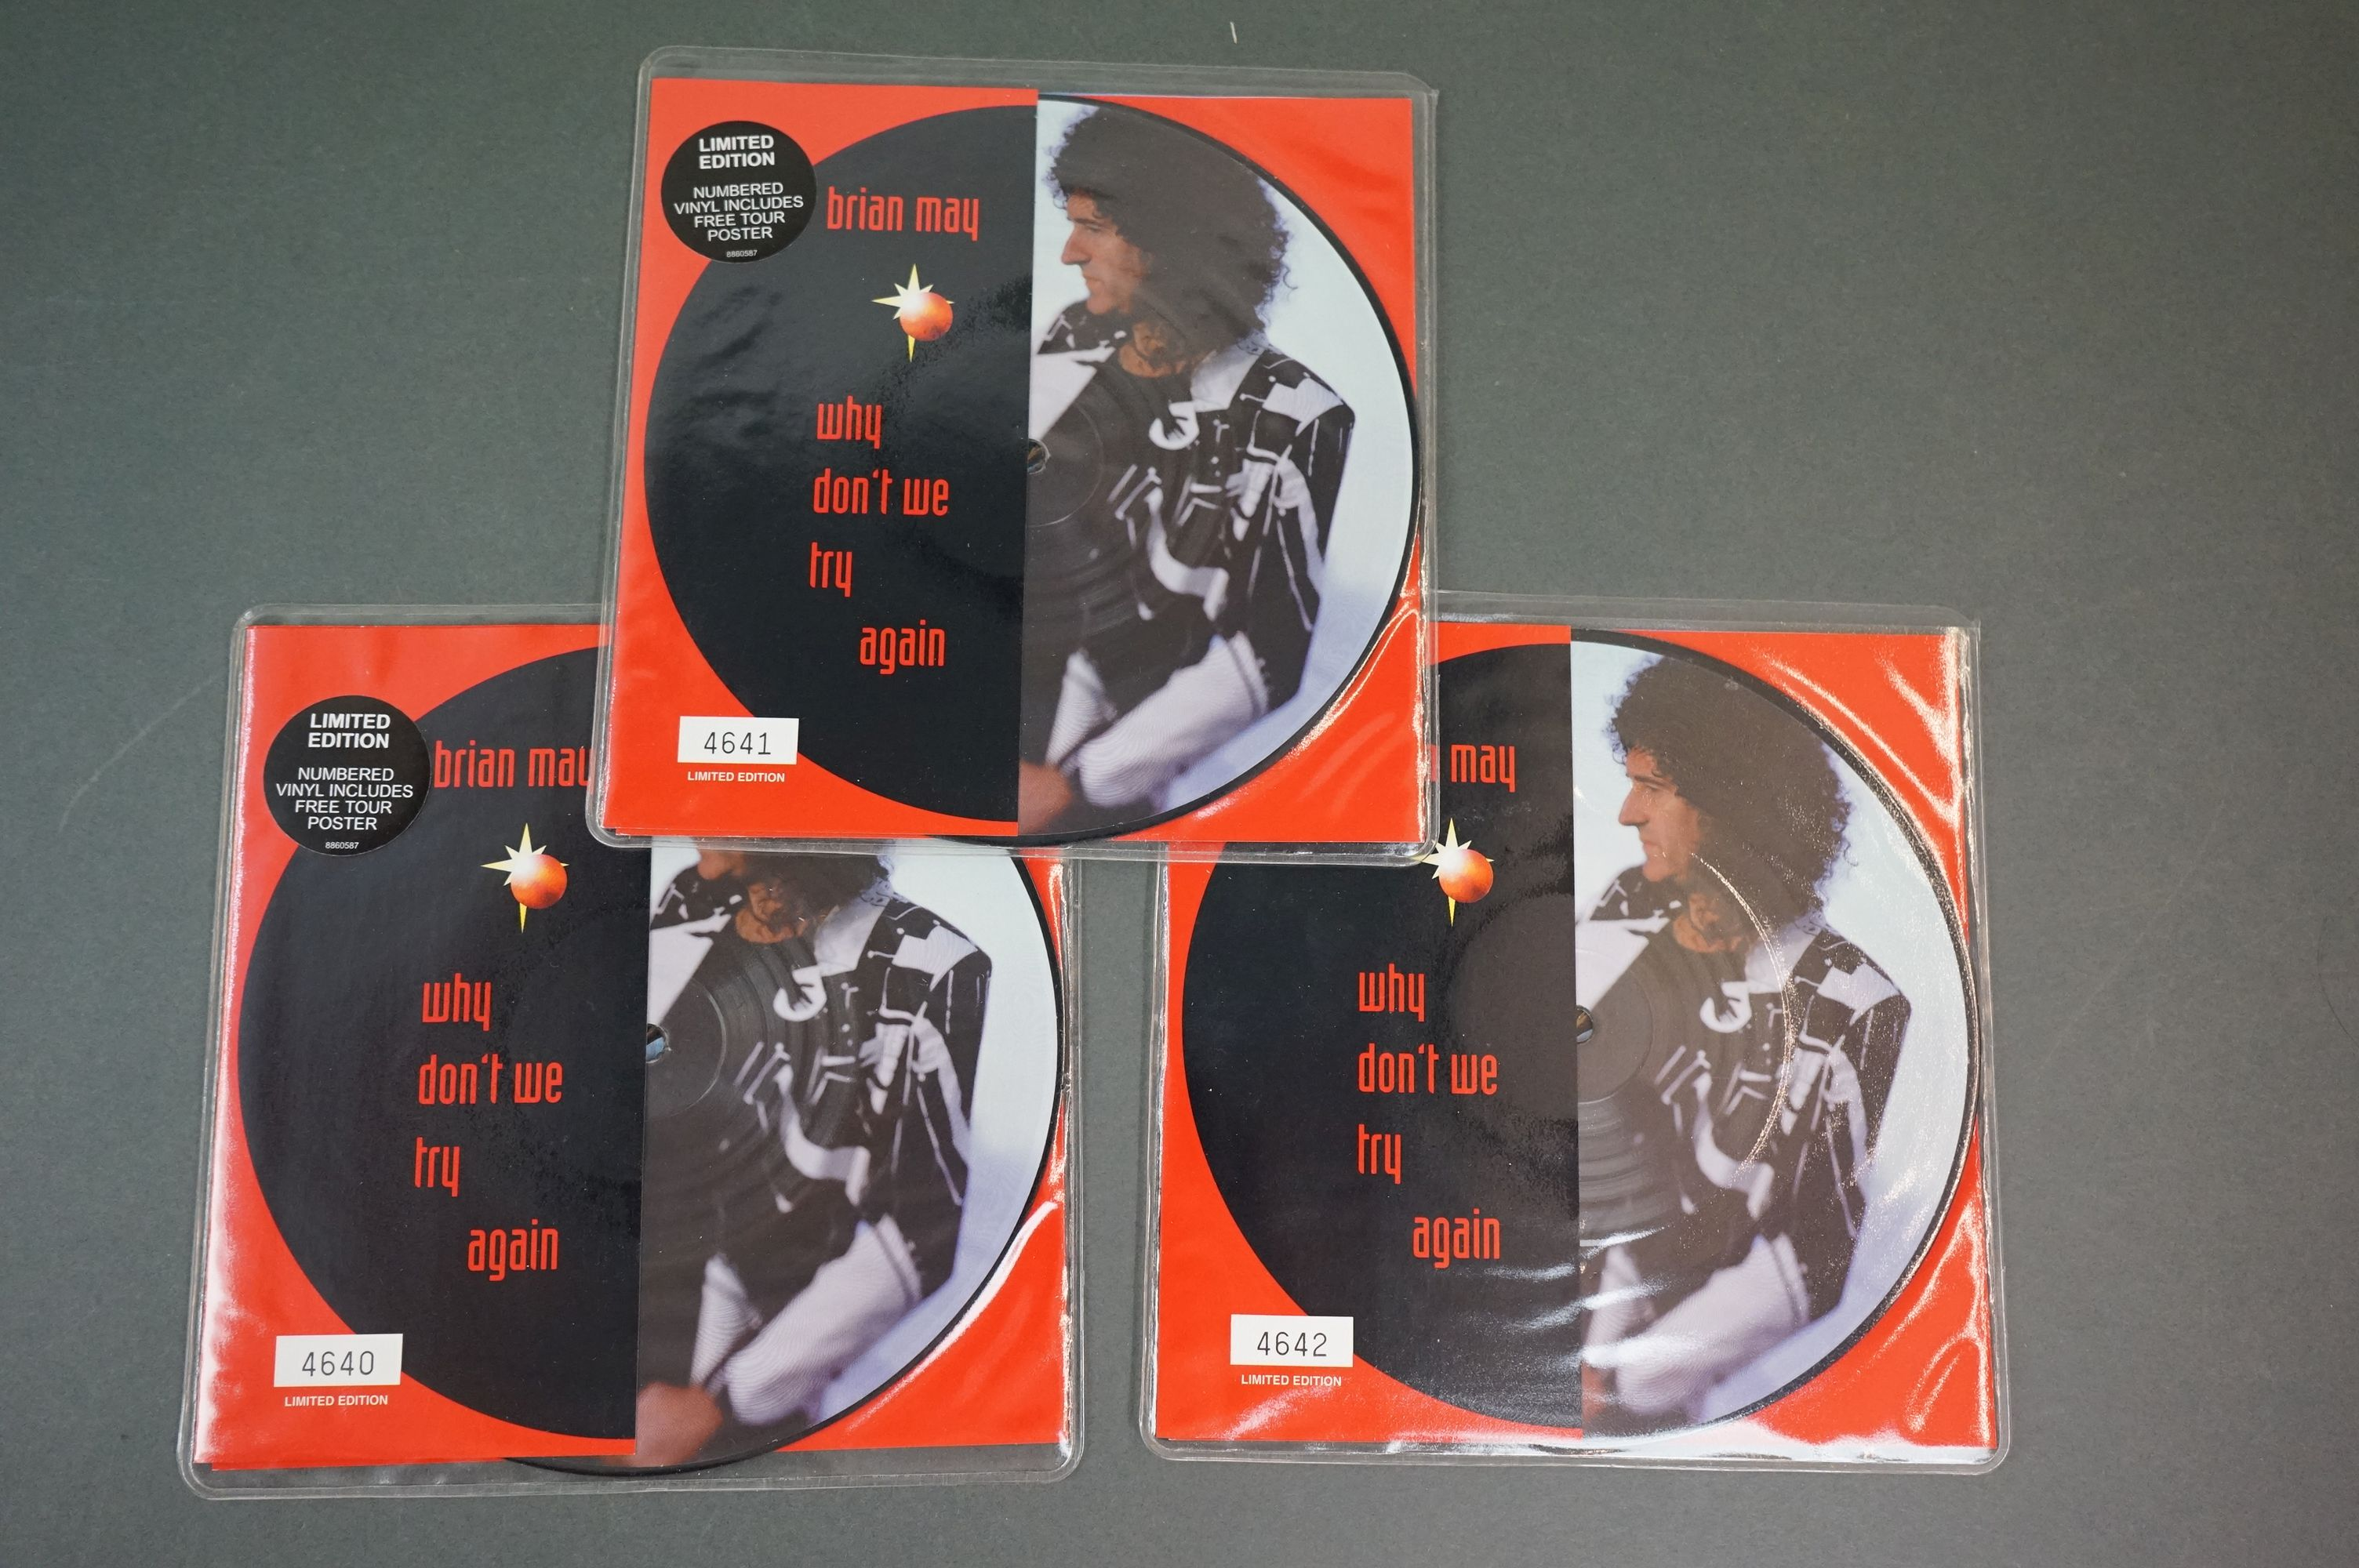 Vinyl - Queen & related collection of 7 inch singles including 12 x No One But You Ltd Edn picture - Image 4 of 11